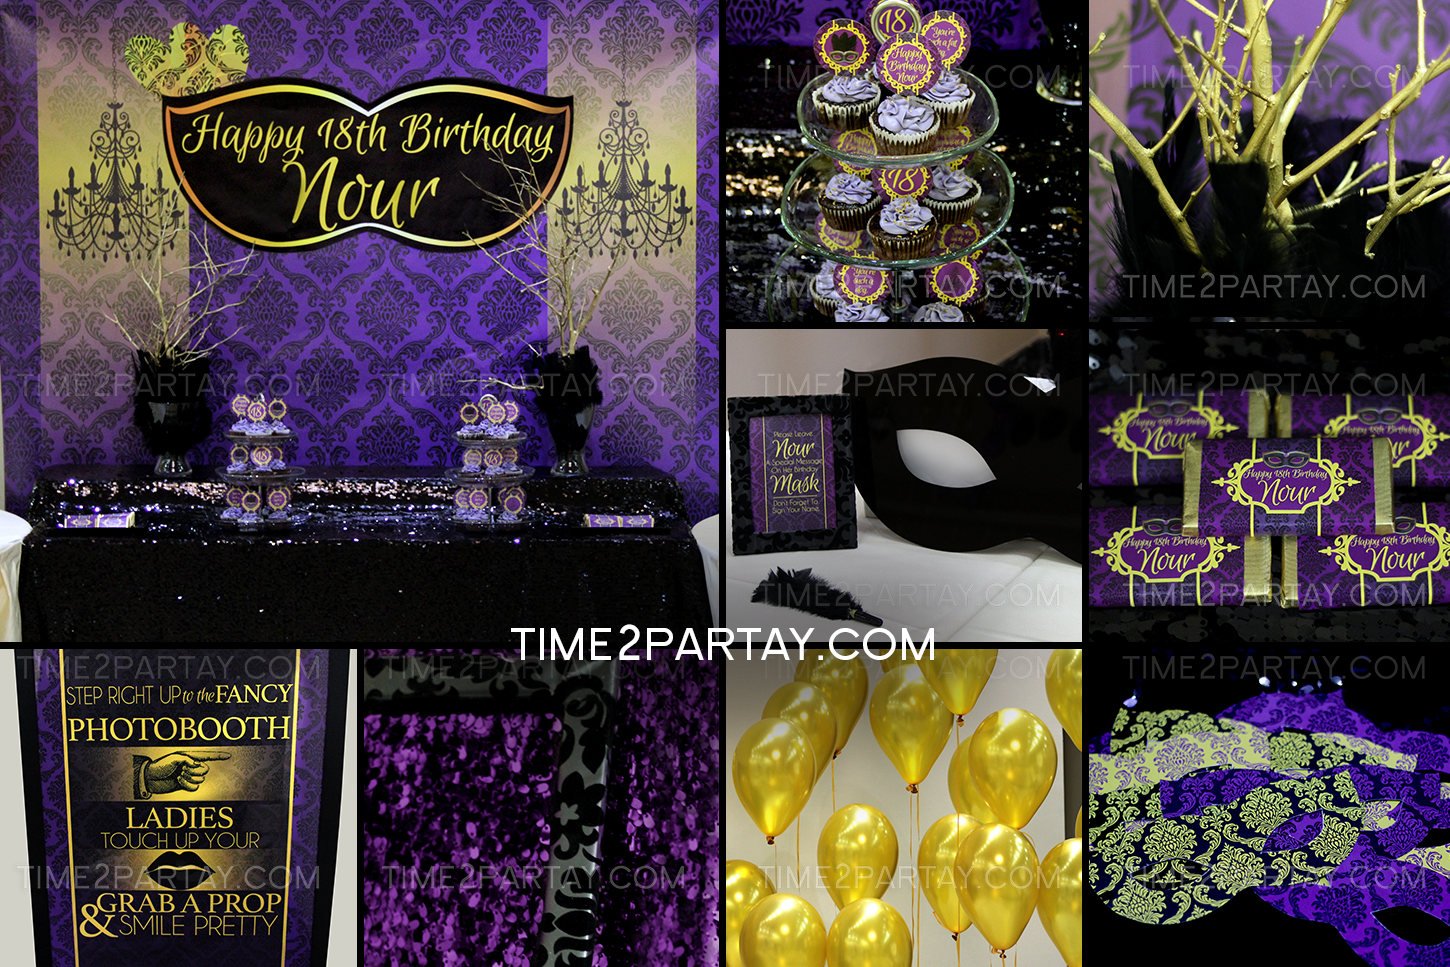 A Masquerade Themed Birthday Party | Time2Partay.com